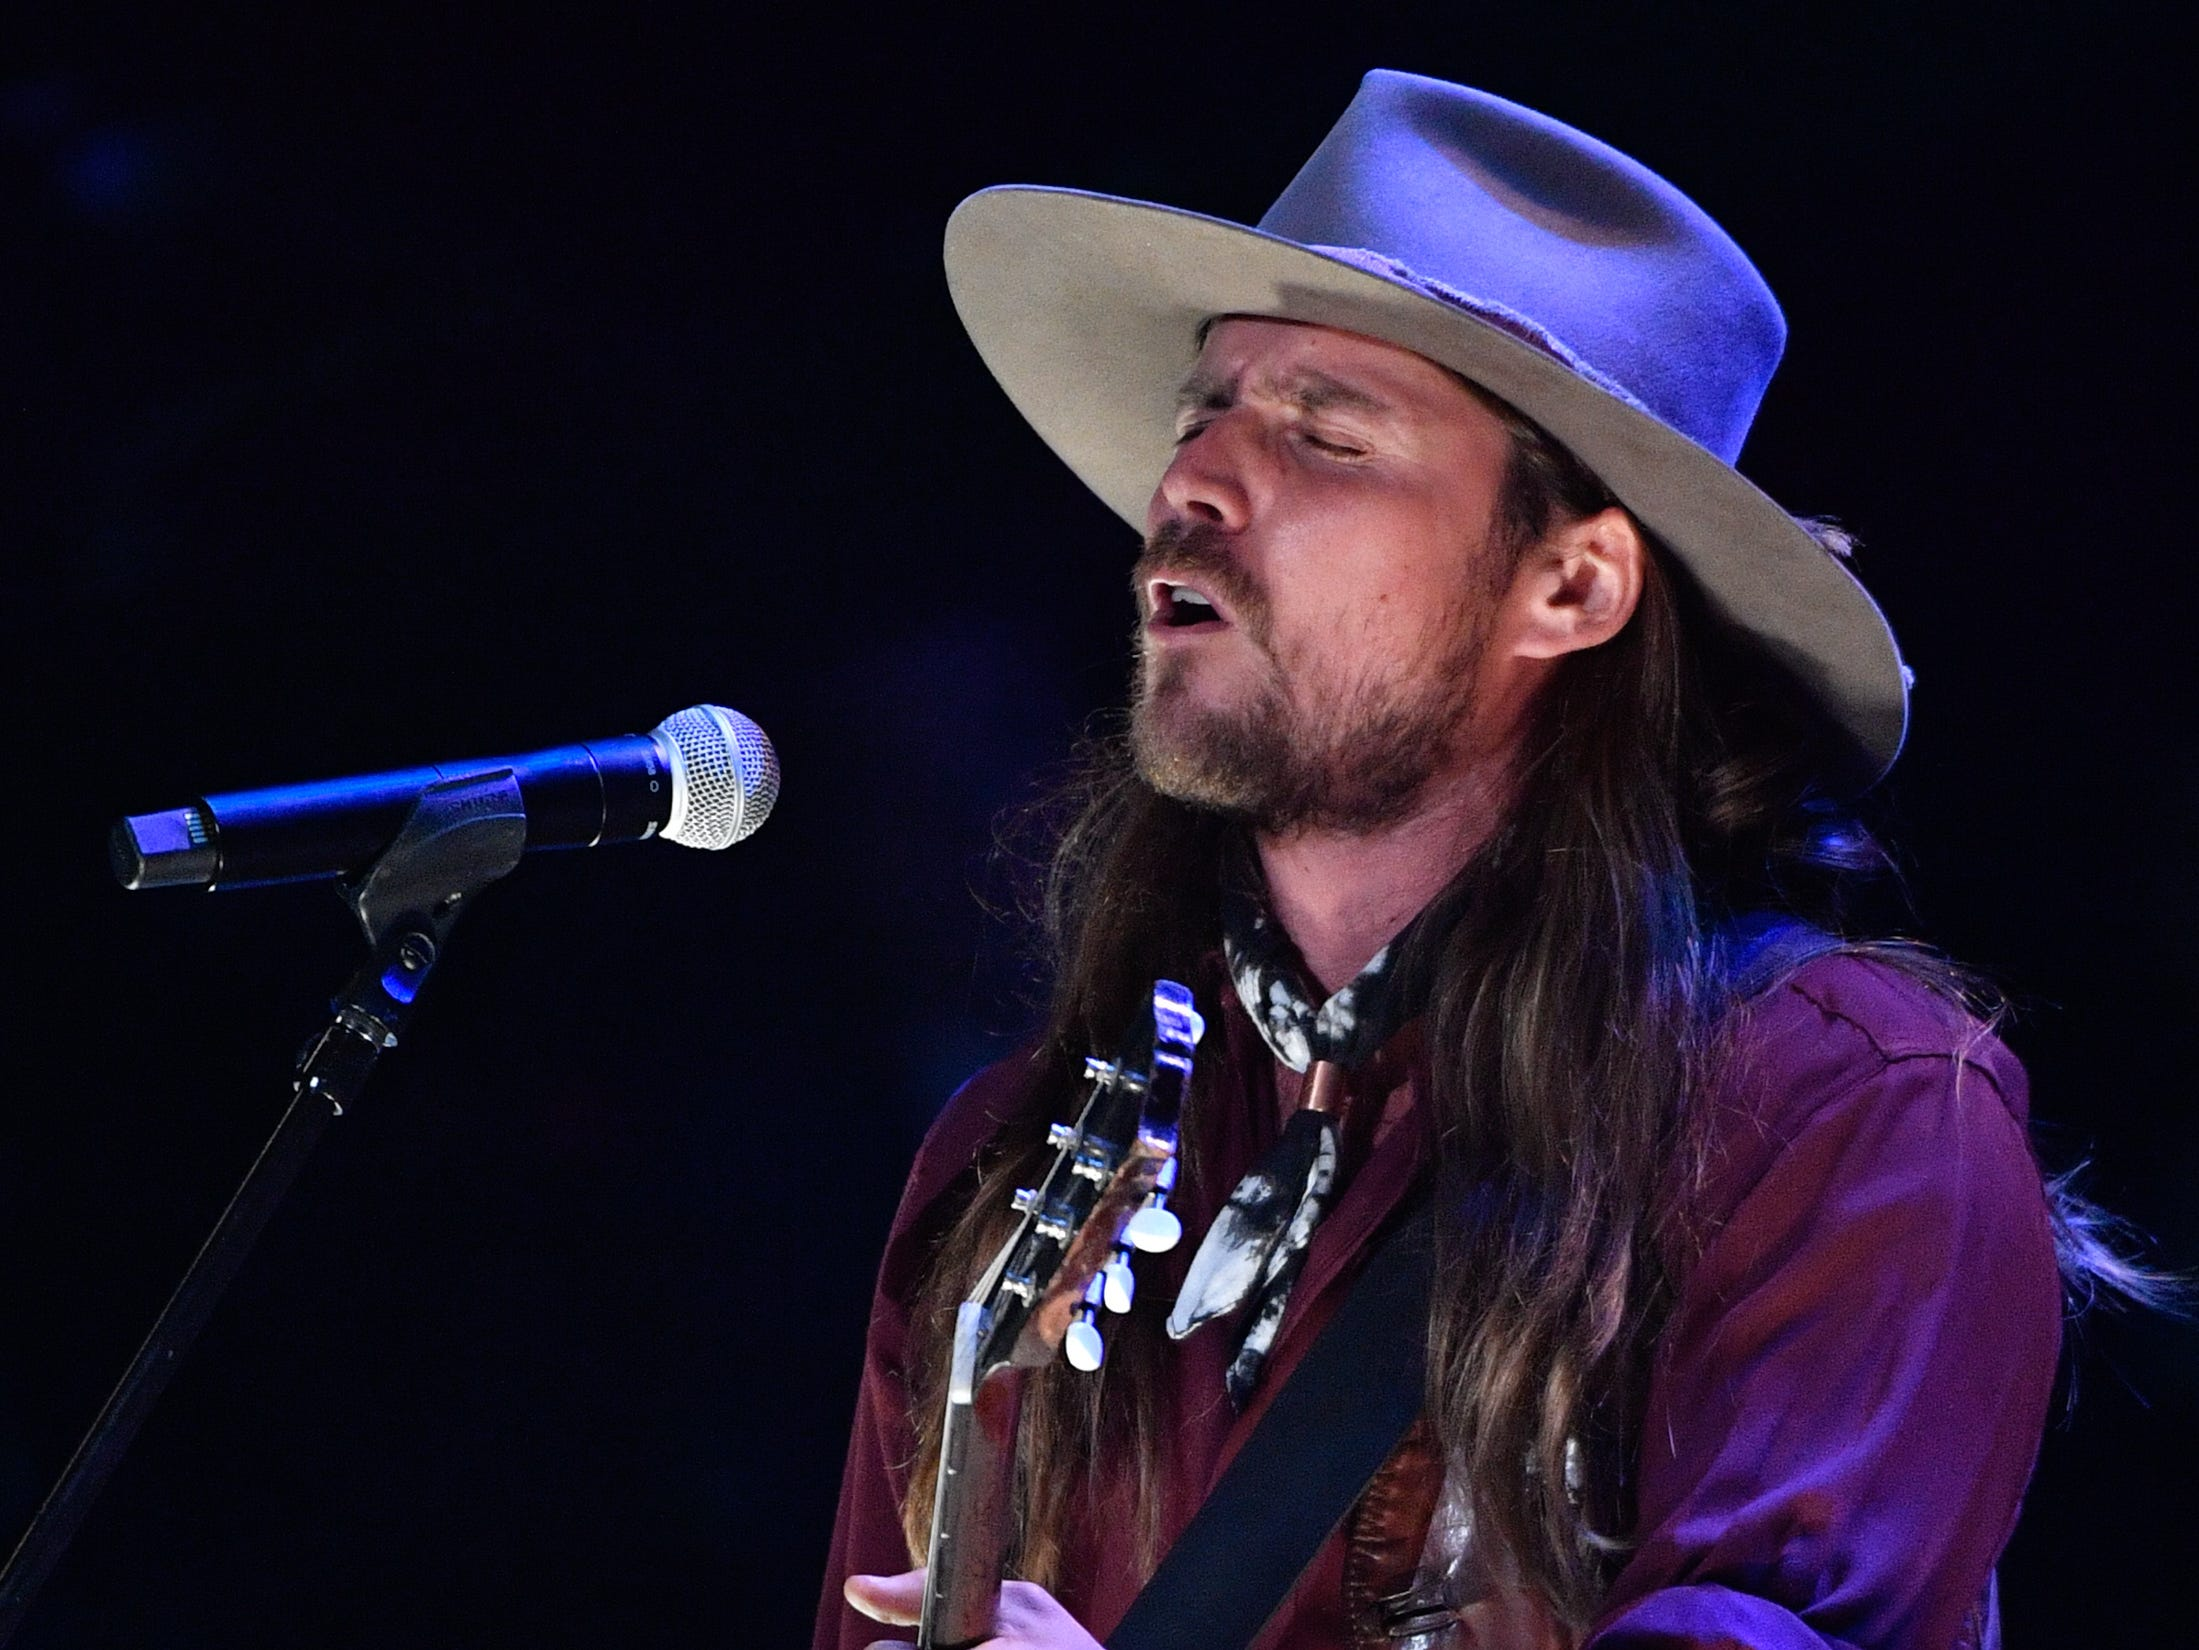 Lukas Nelson and Promise of the Real perform during the 2018 Americana Honors and Awards show at the Ryman Auditorium in Nashville, Tenn., Wednesday, Sept. 12, 2018.